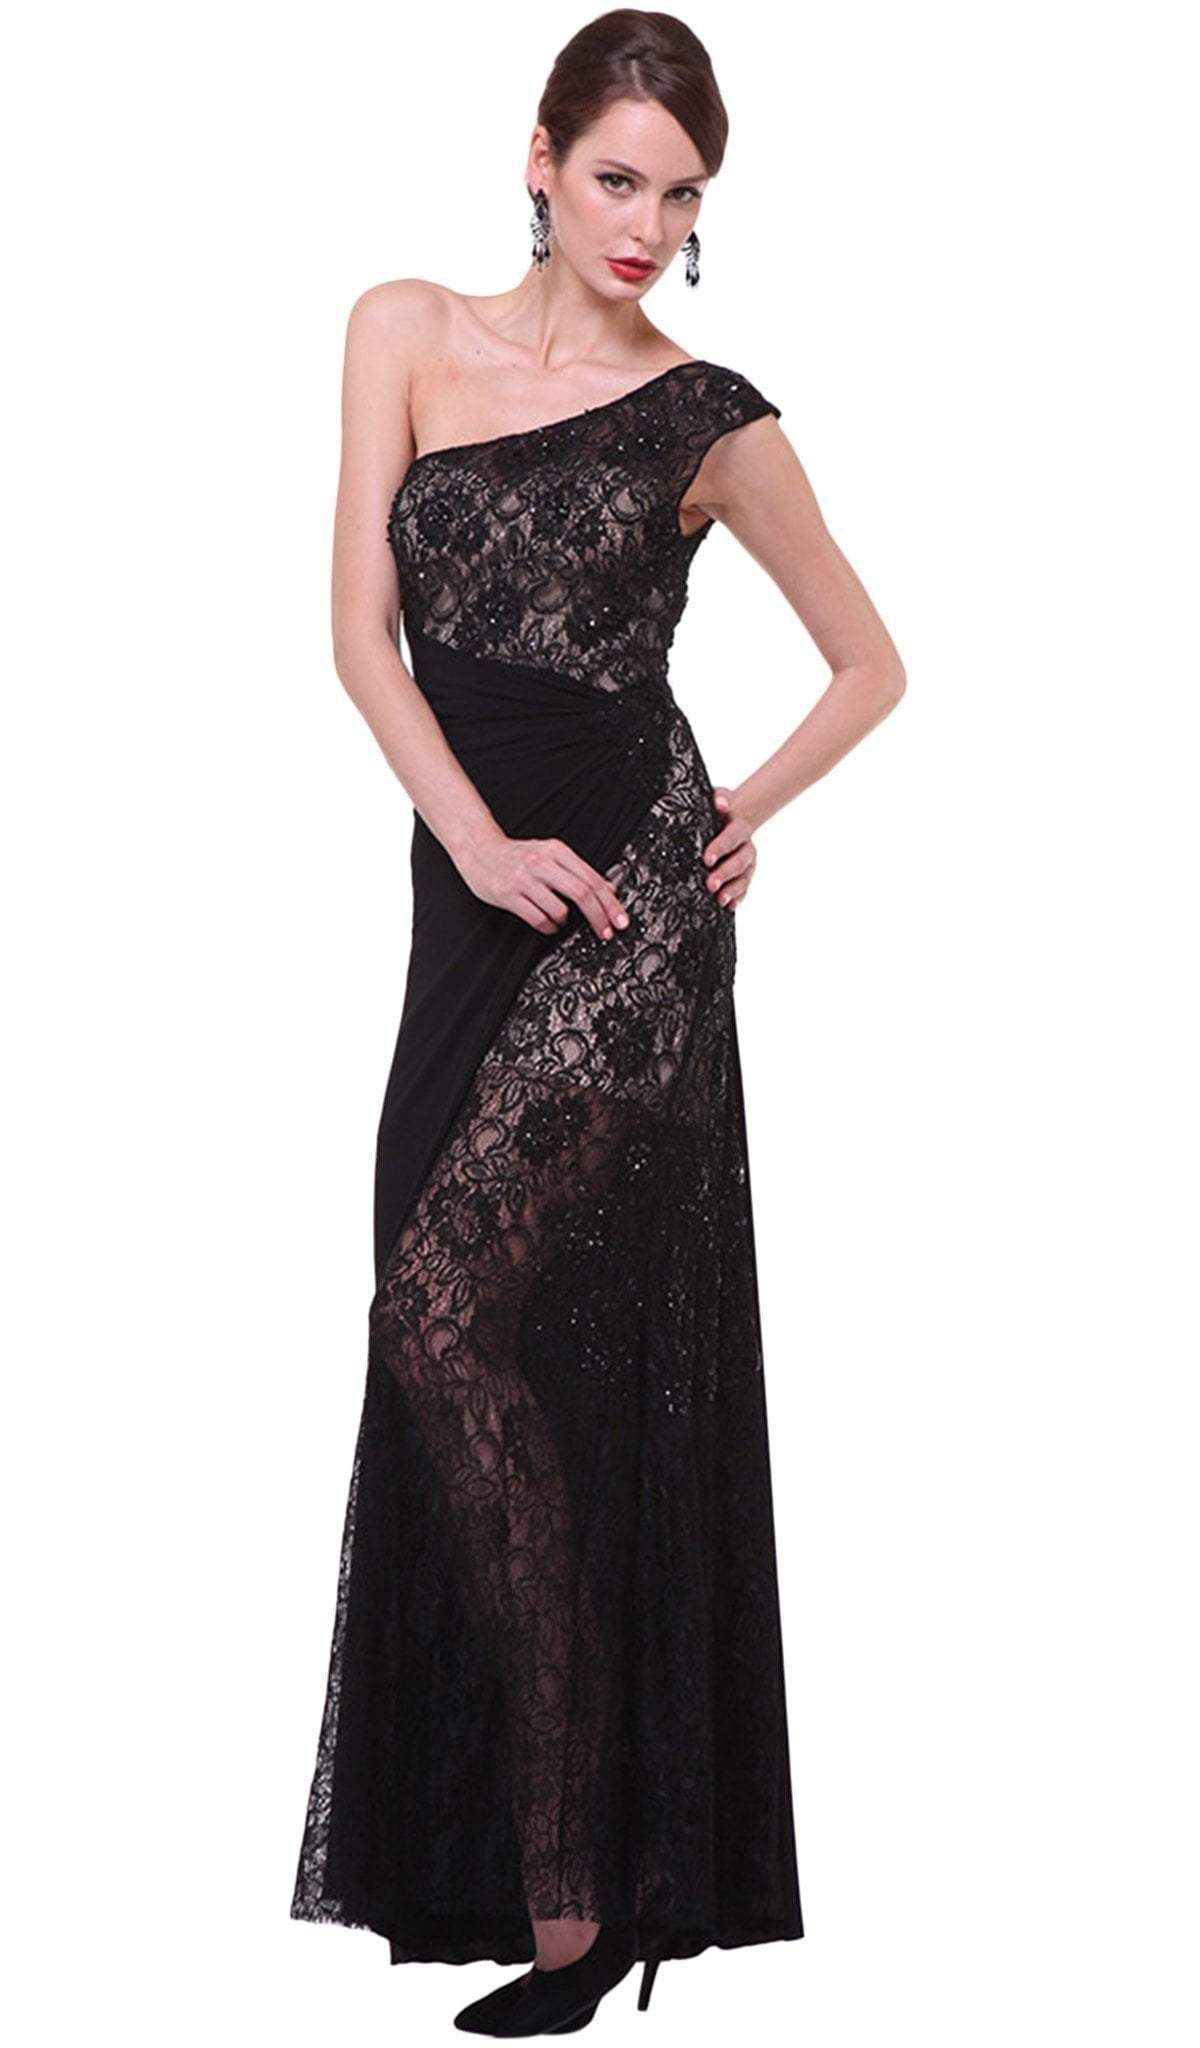 Wholesale dresses for Prom, Wedding and Formal Evenings